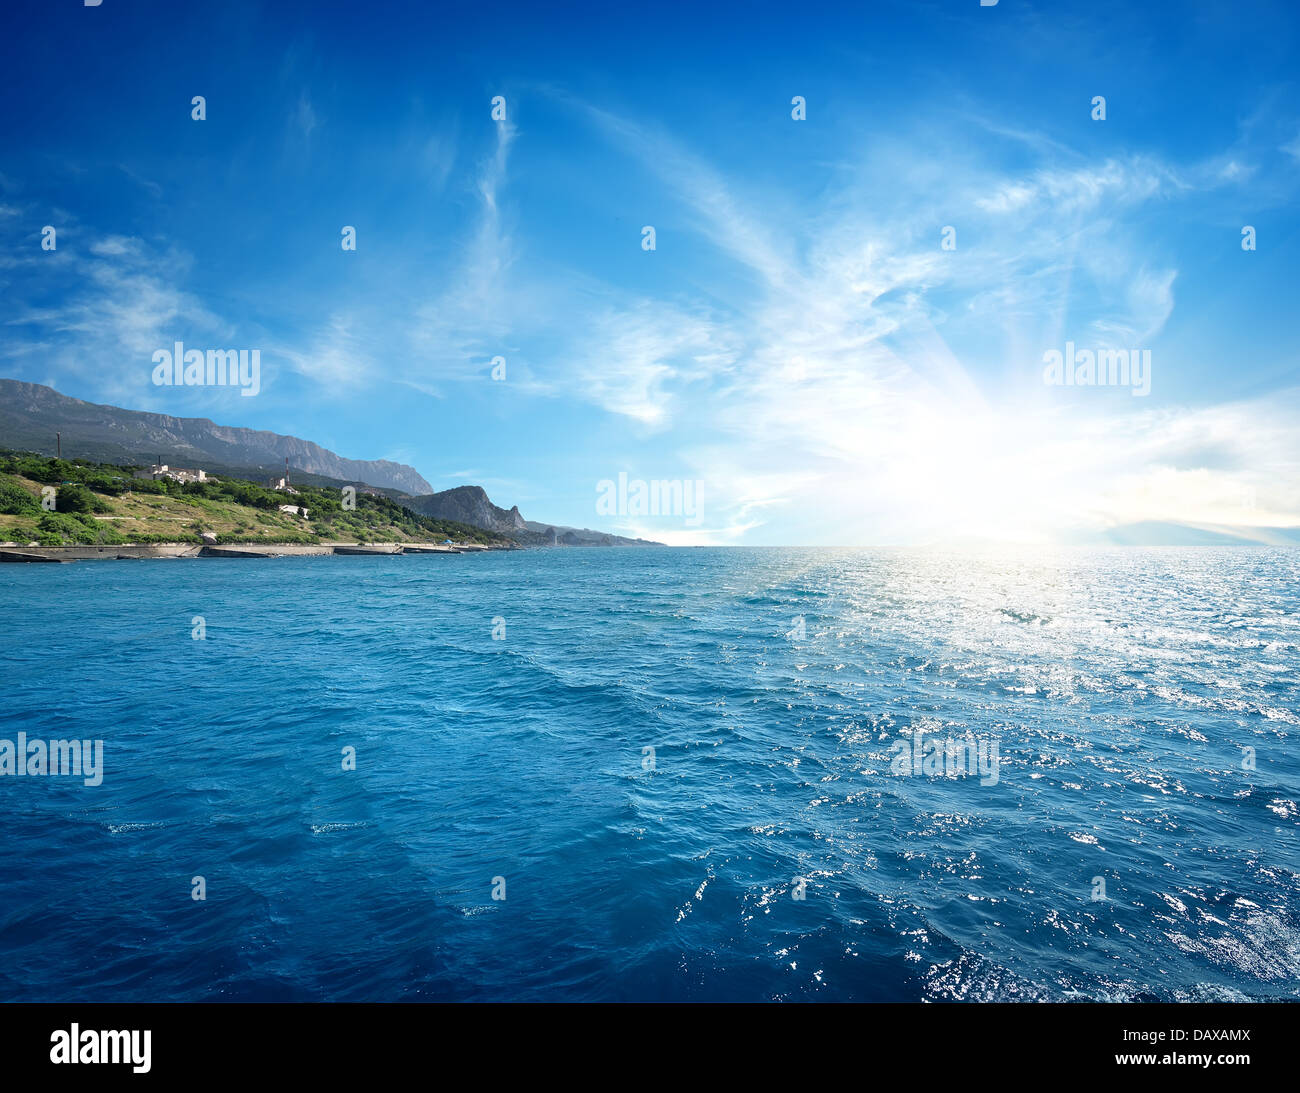 The morning sun rises from the sea - Stock Image